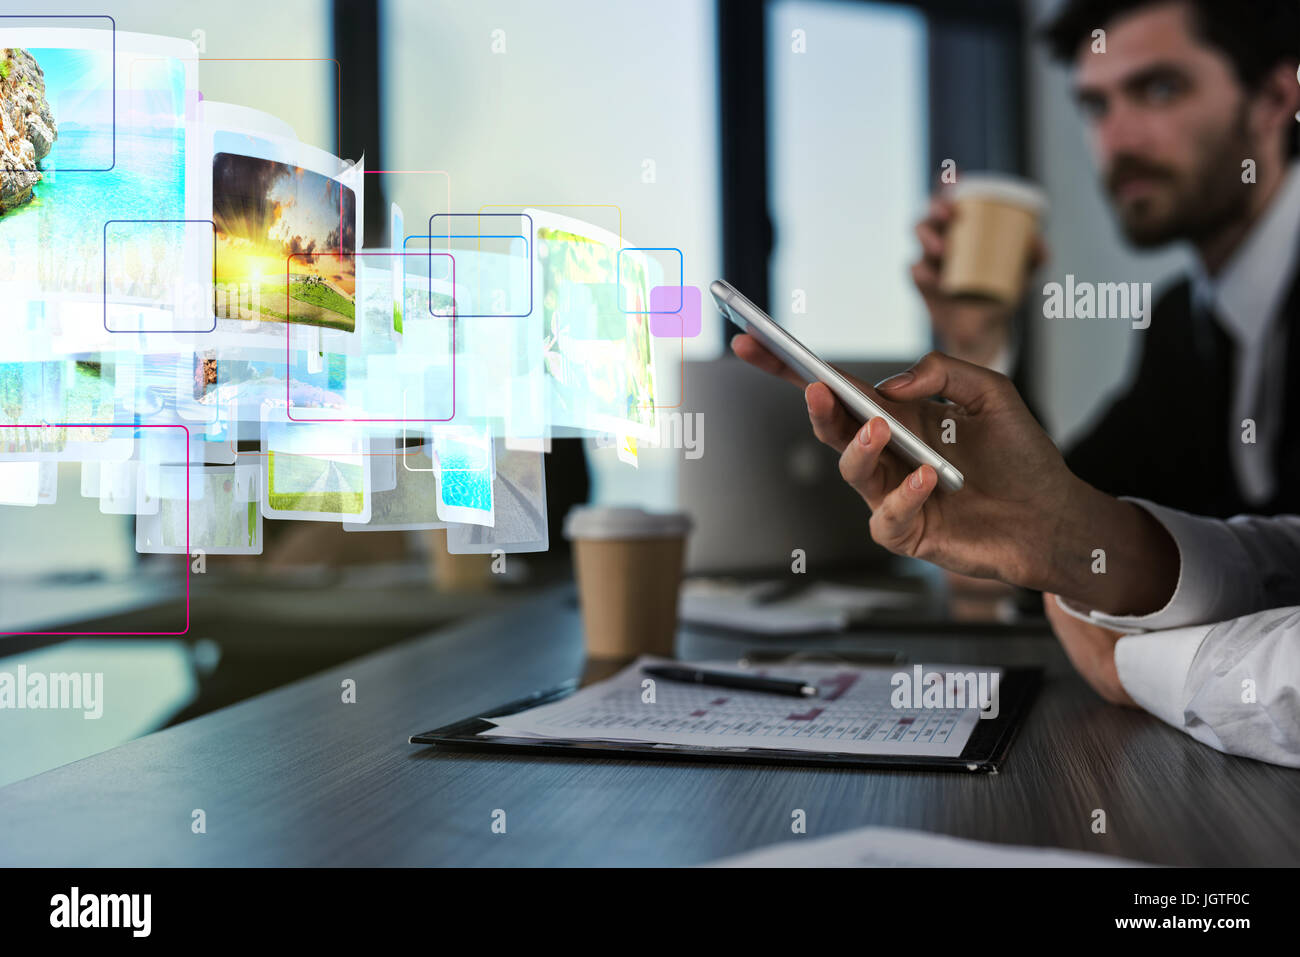 Internet streaming of mobile phone concept - Stock Image